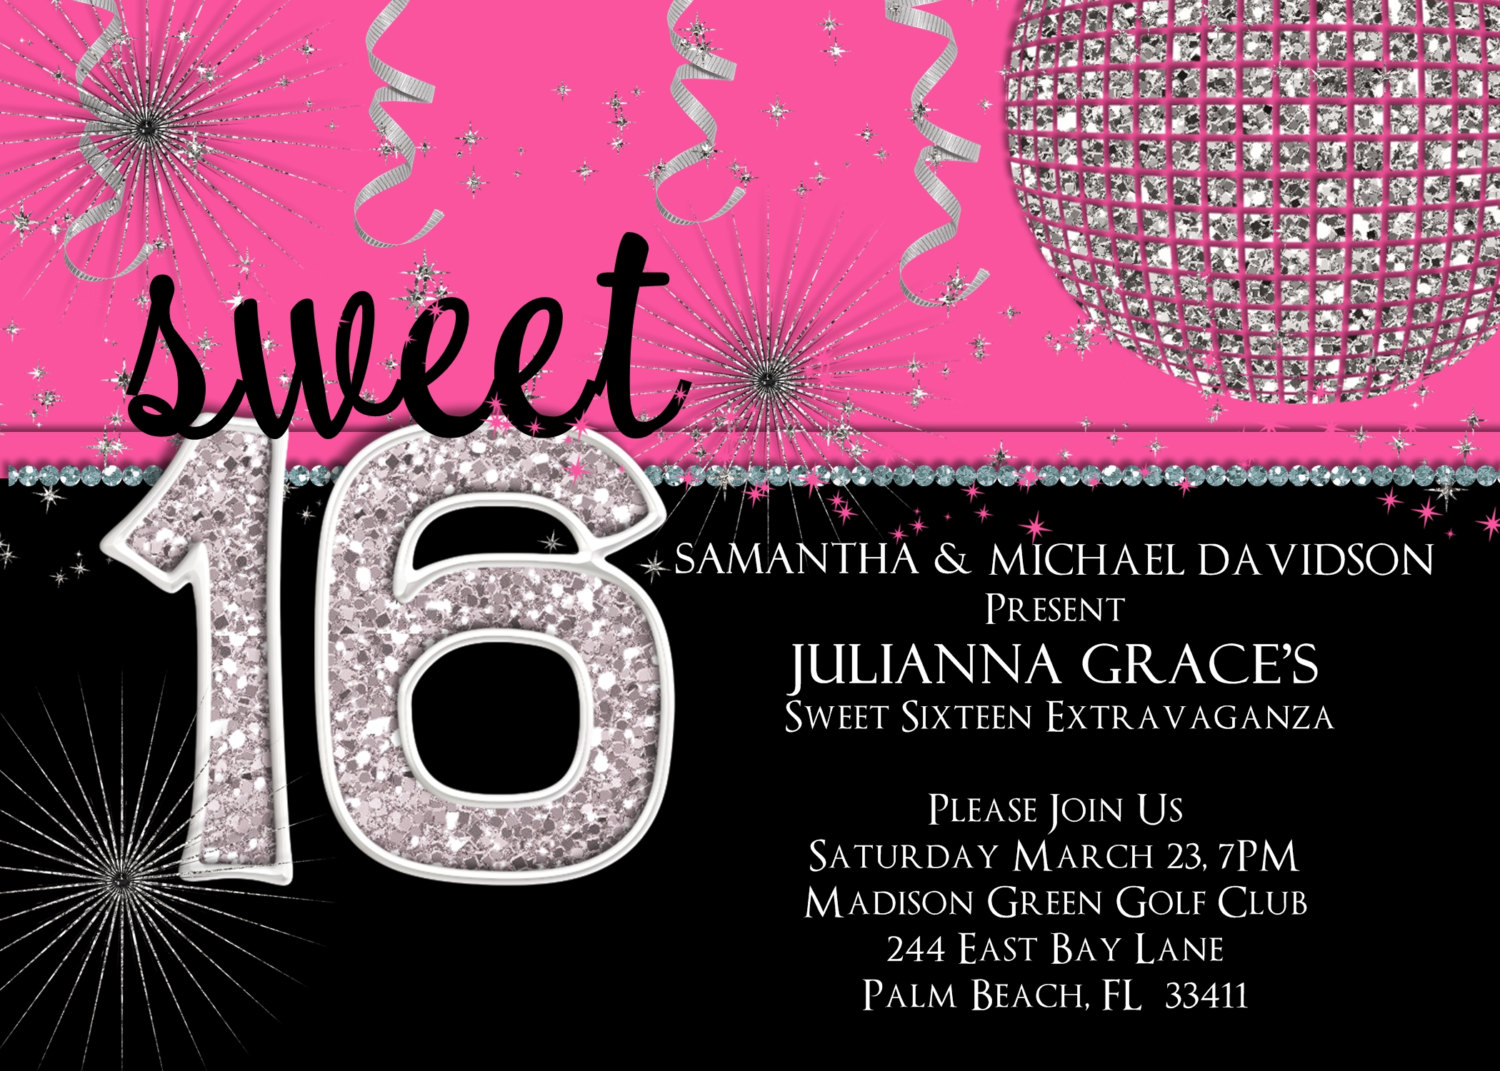 16th birthday invitations ; 16th-birthday-invitations-is-one-of-the-best-idea-to-create-your-Birthday-invitation-with-divine-design-1